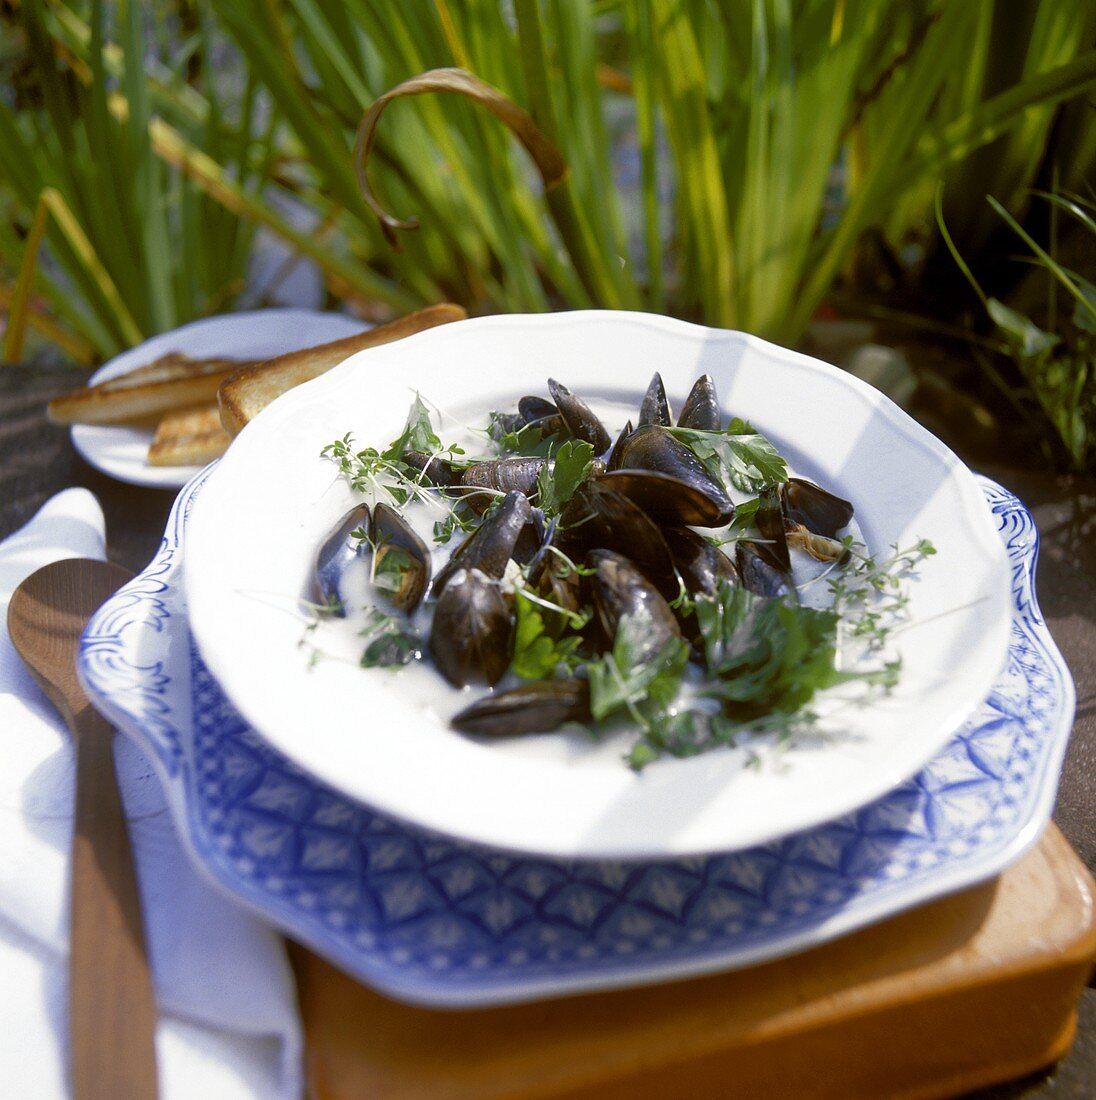 Mussels in herb and white wine sauce